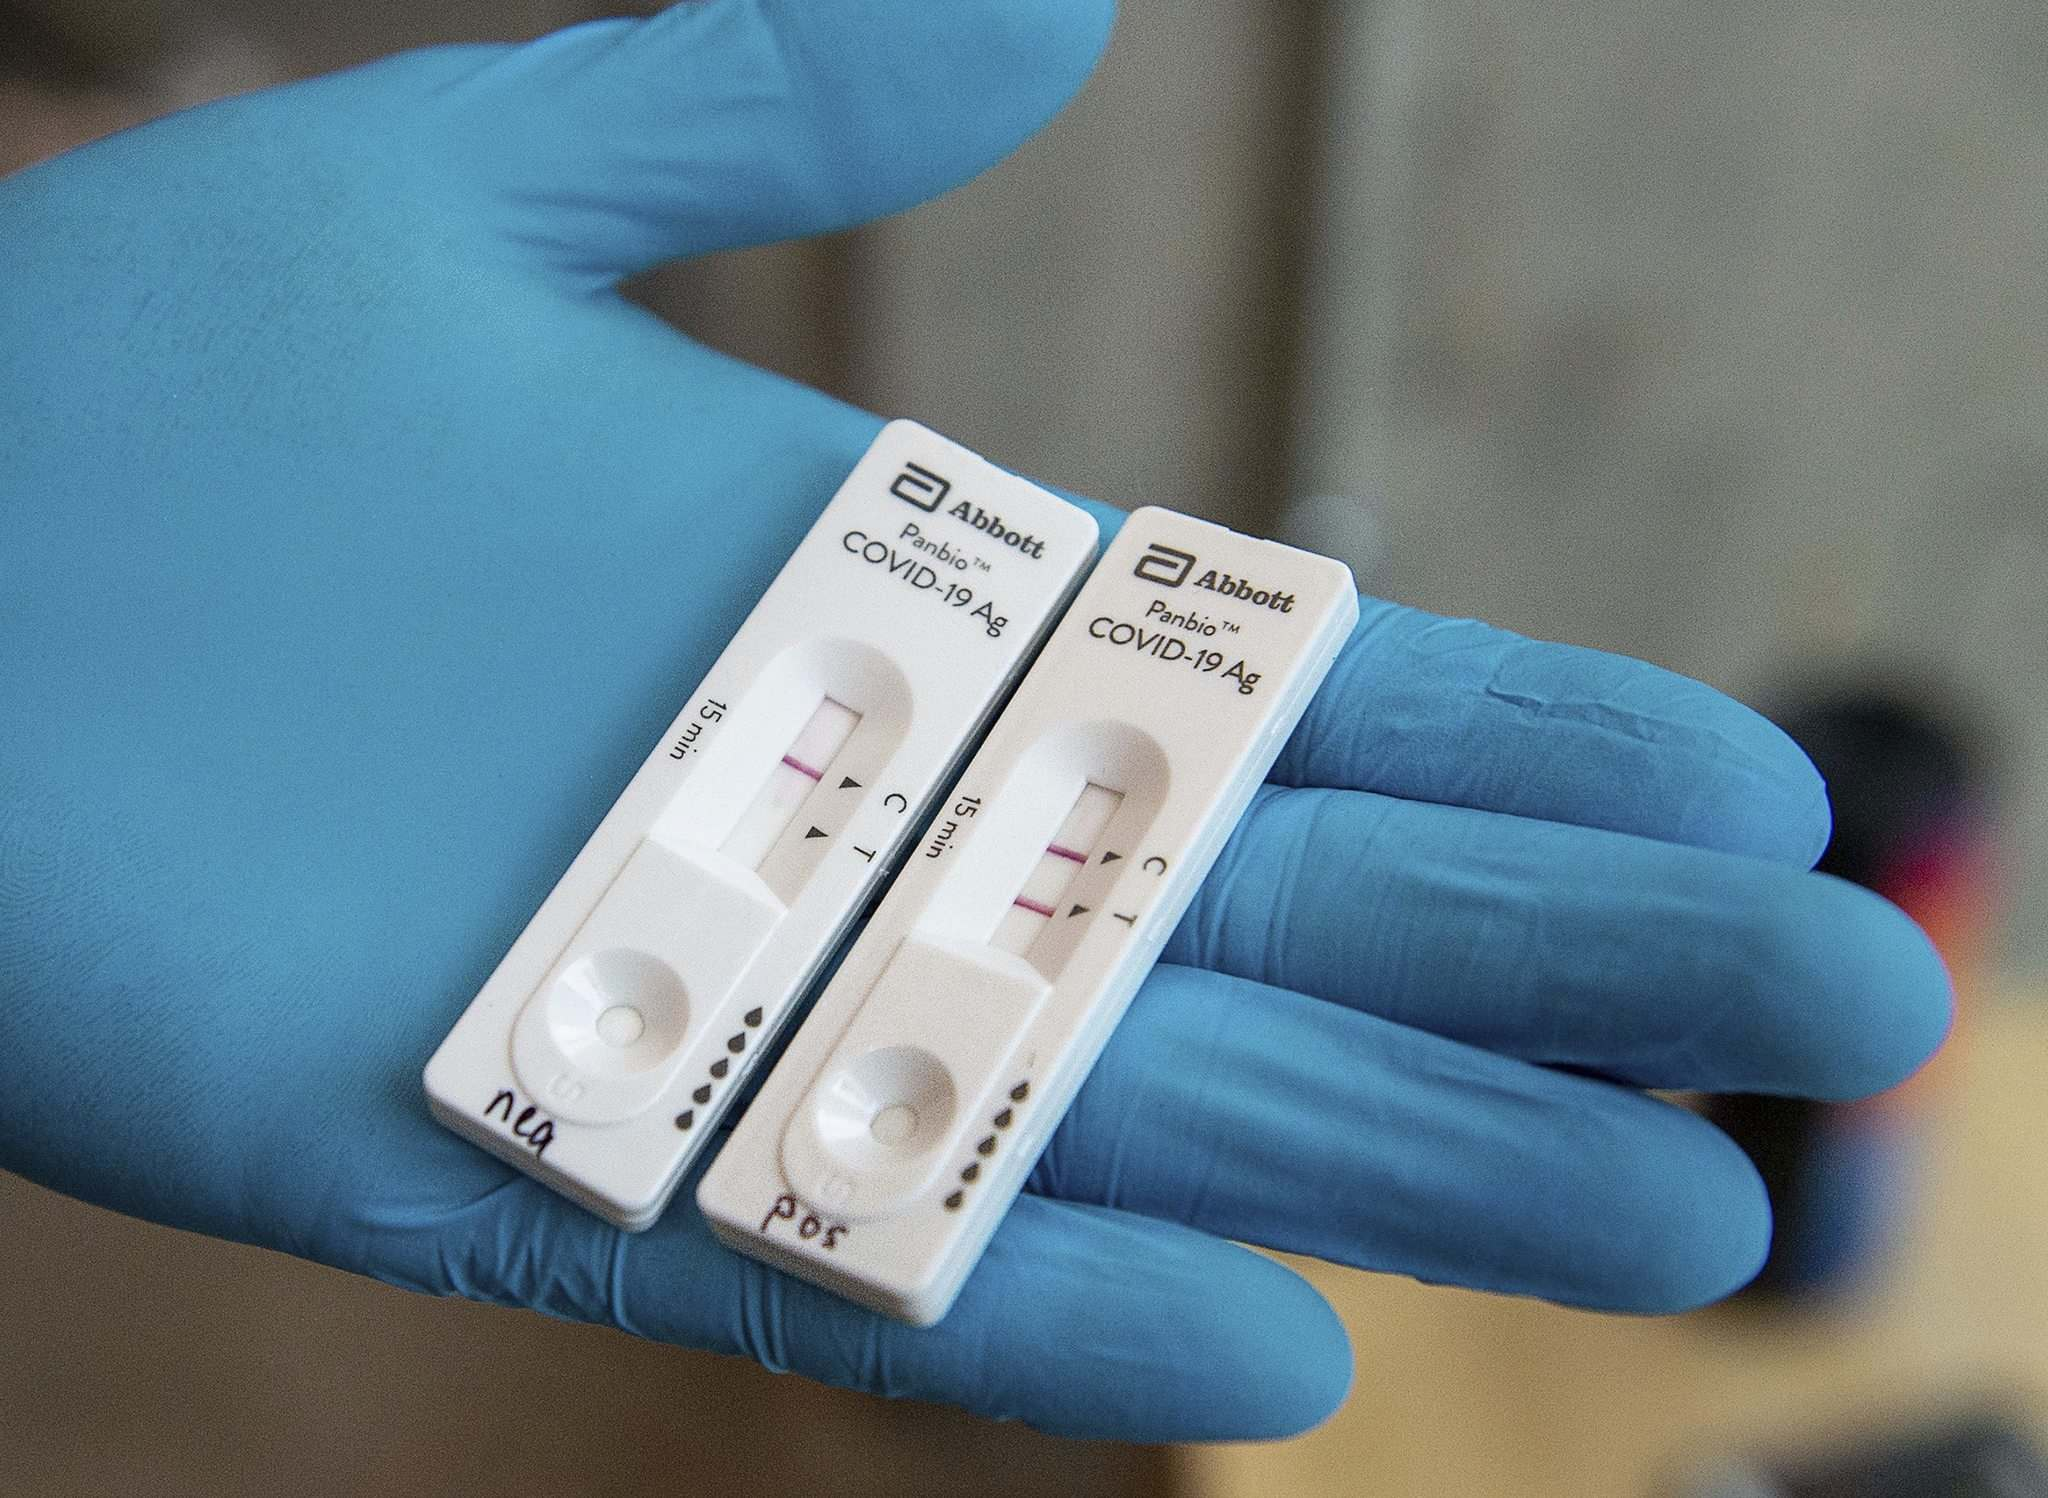 An Abbott Laboratories Panbio COVID-19 Rapid Test device. (Andrew Vaughan / The Canadian Press files)